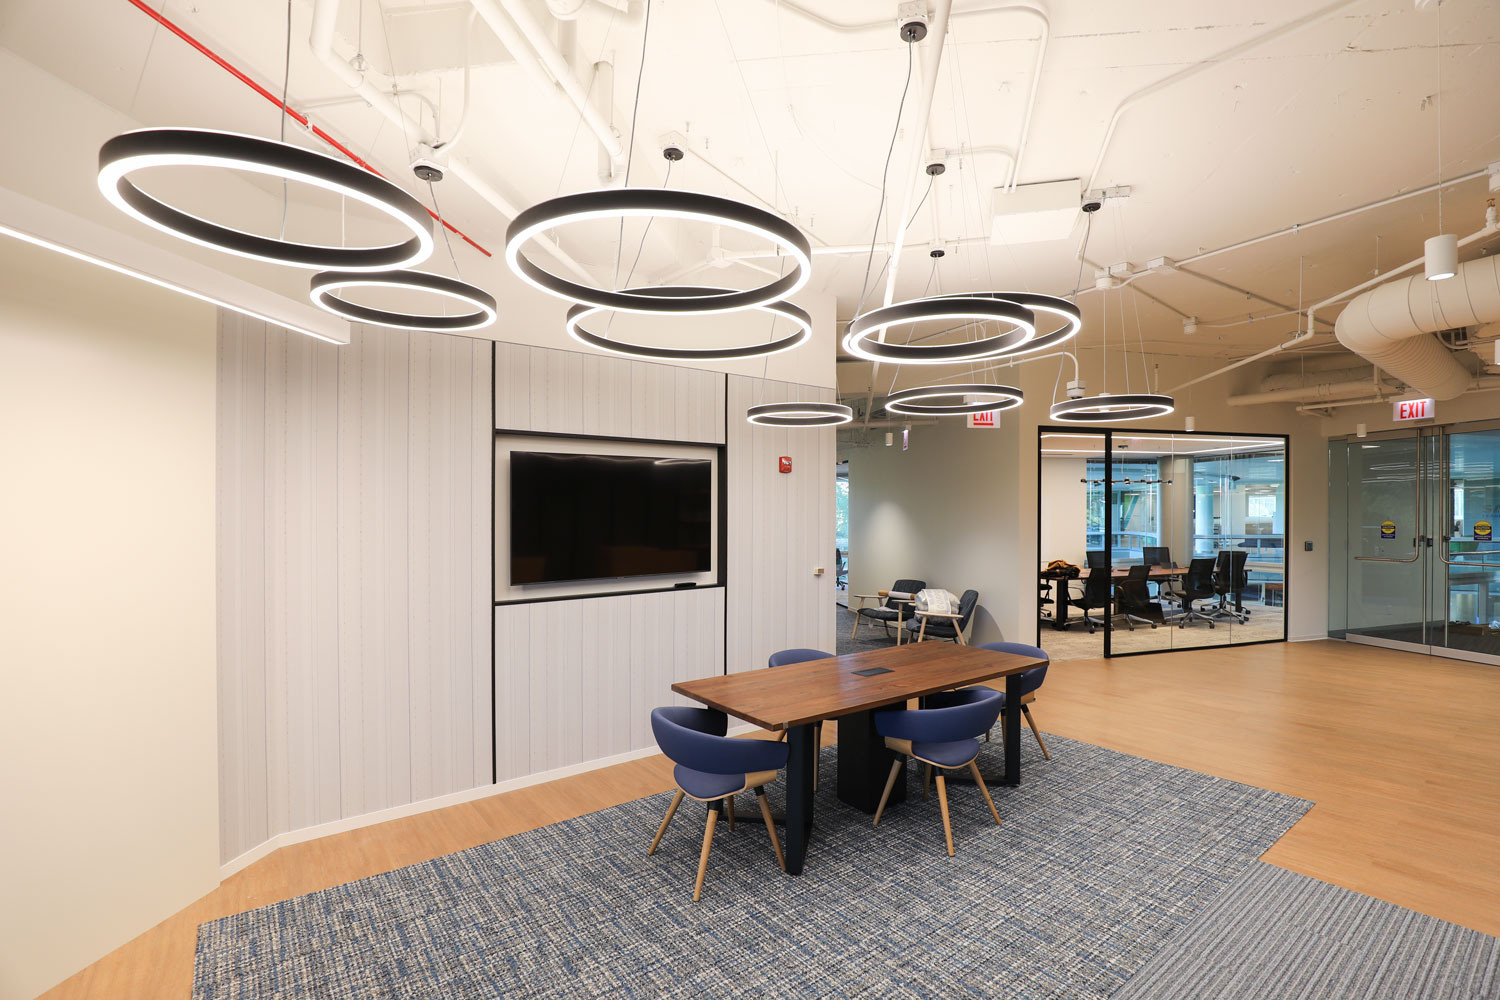 Skender Completes Interior Construction of IDEX Corporation HQ in Northbrook, Illinois